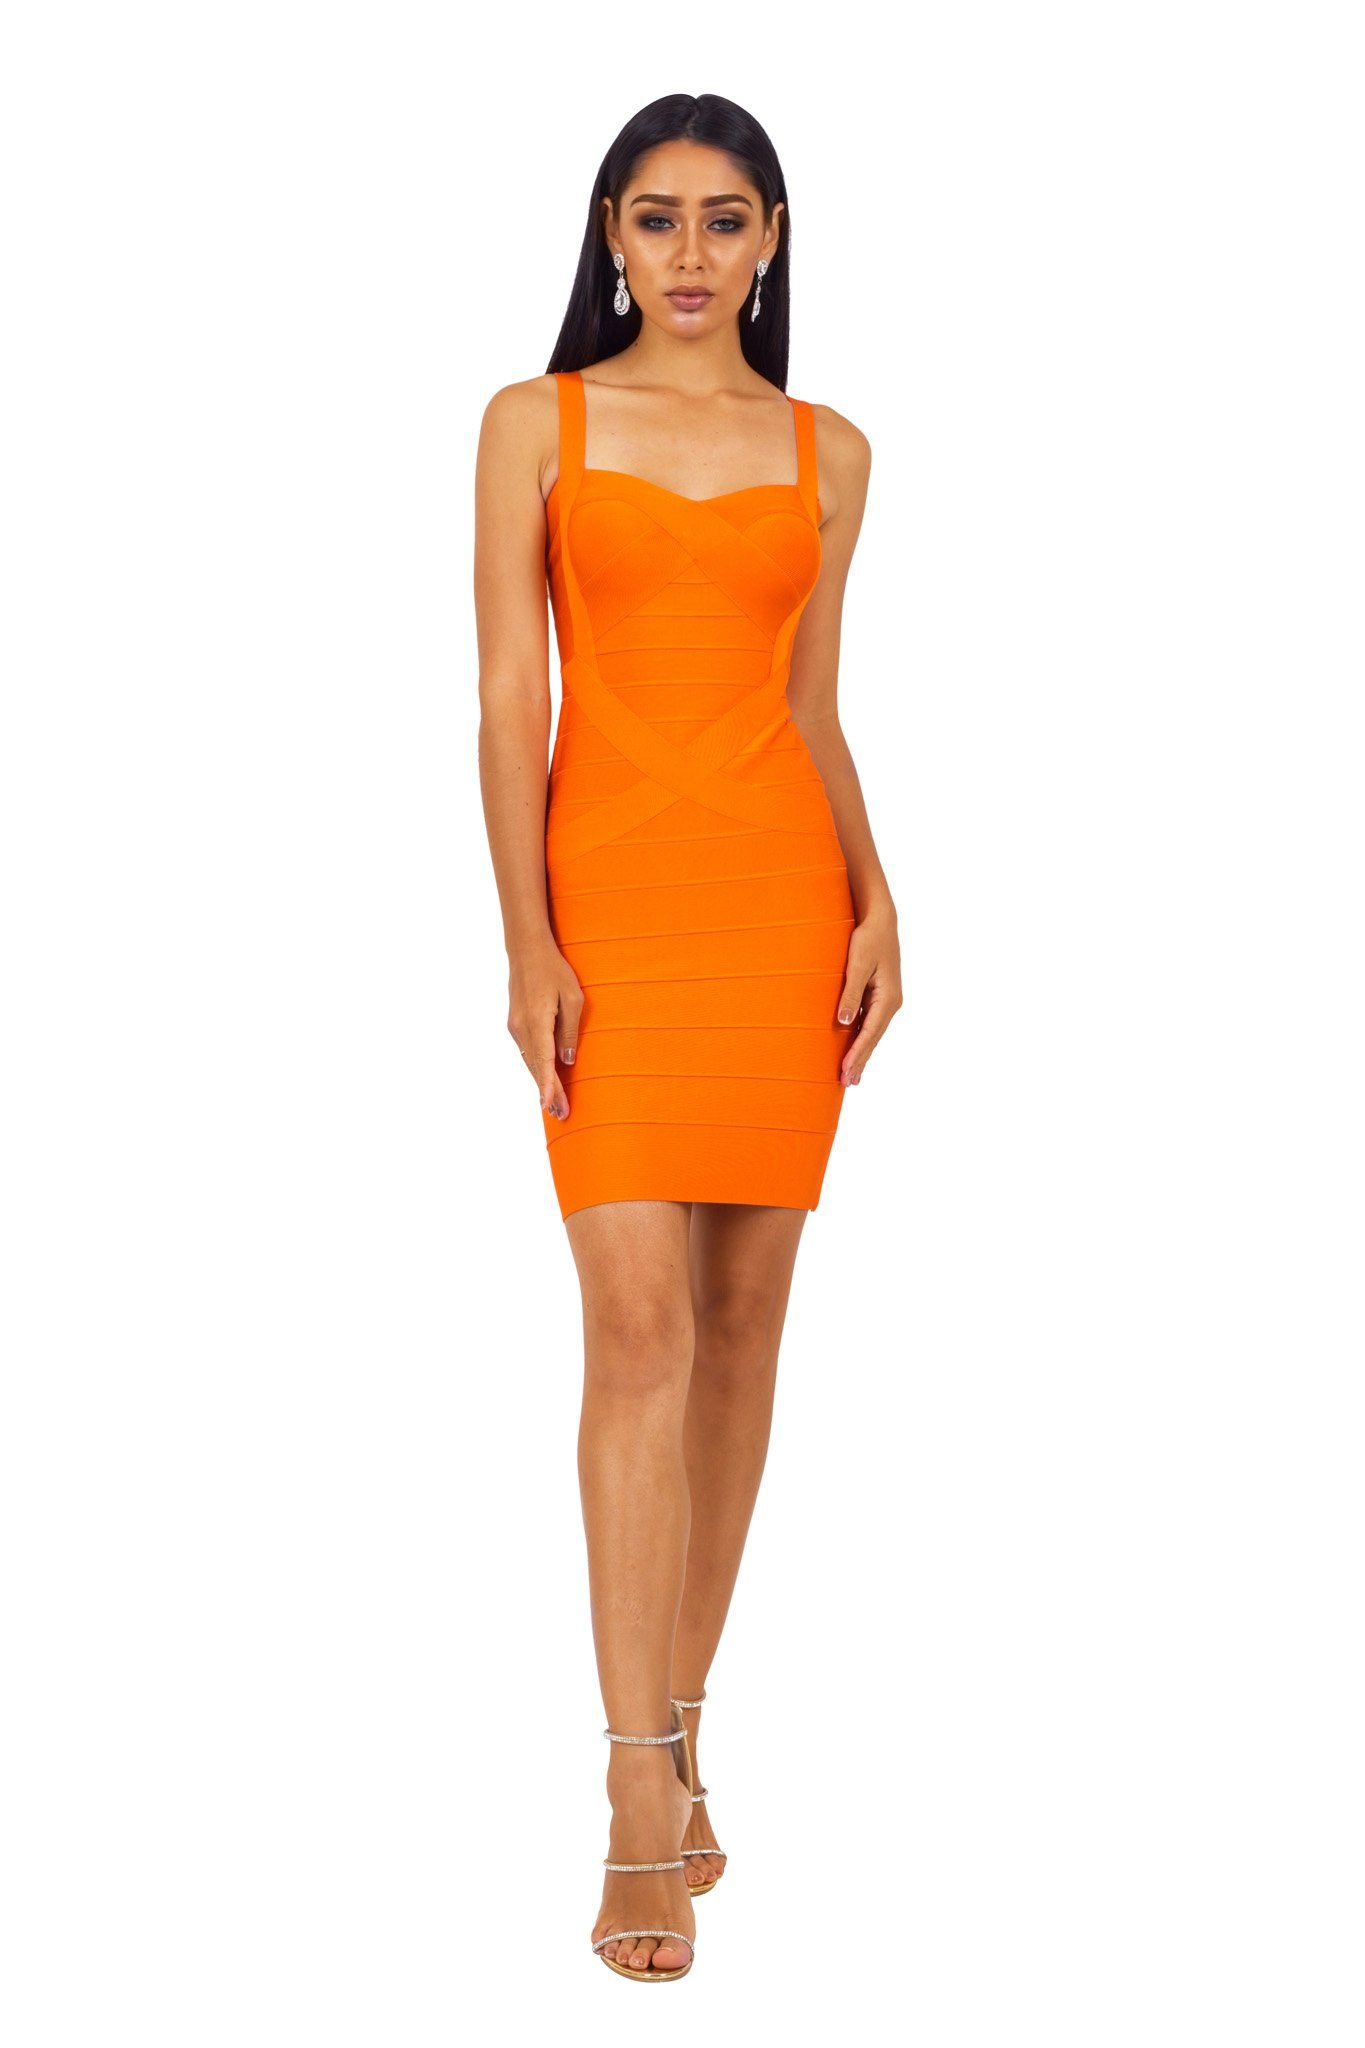 Front of orange colored mini bodycon bandage dress with shoulder straps and sweetheart neckline